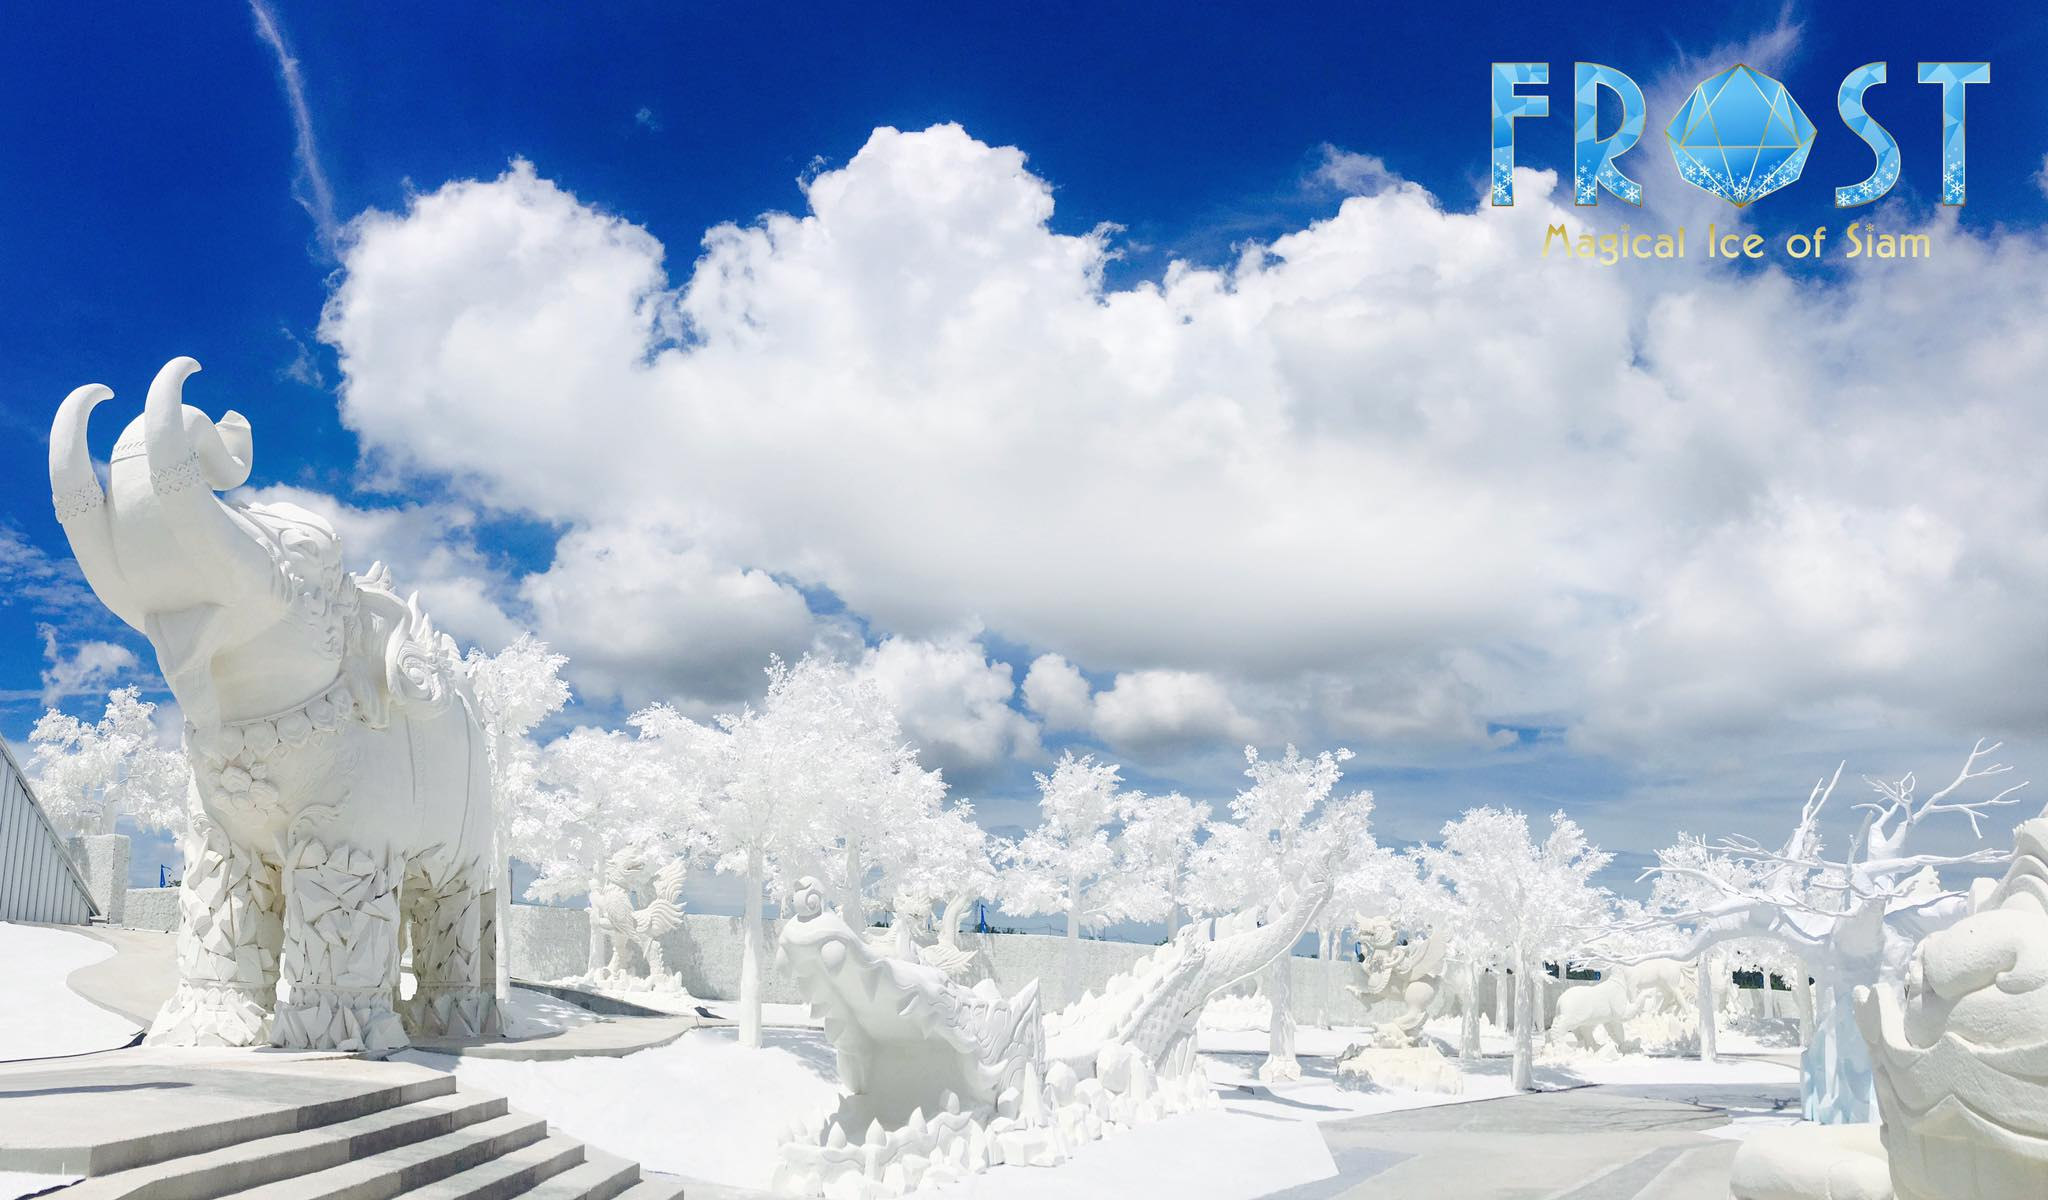 Frost Magical Ice of Siam (1)